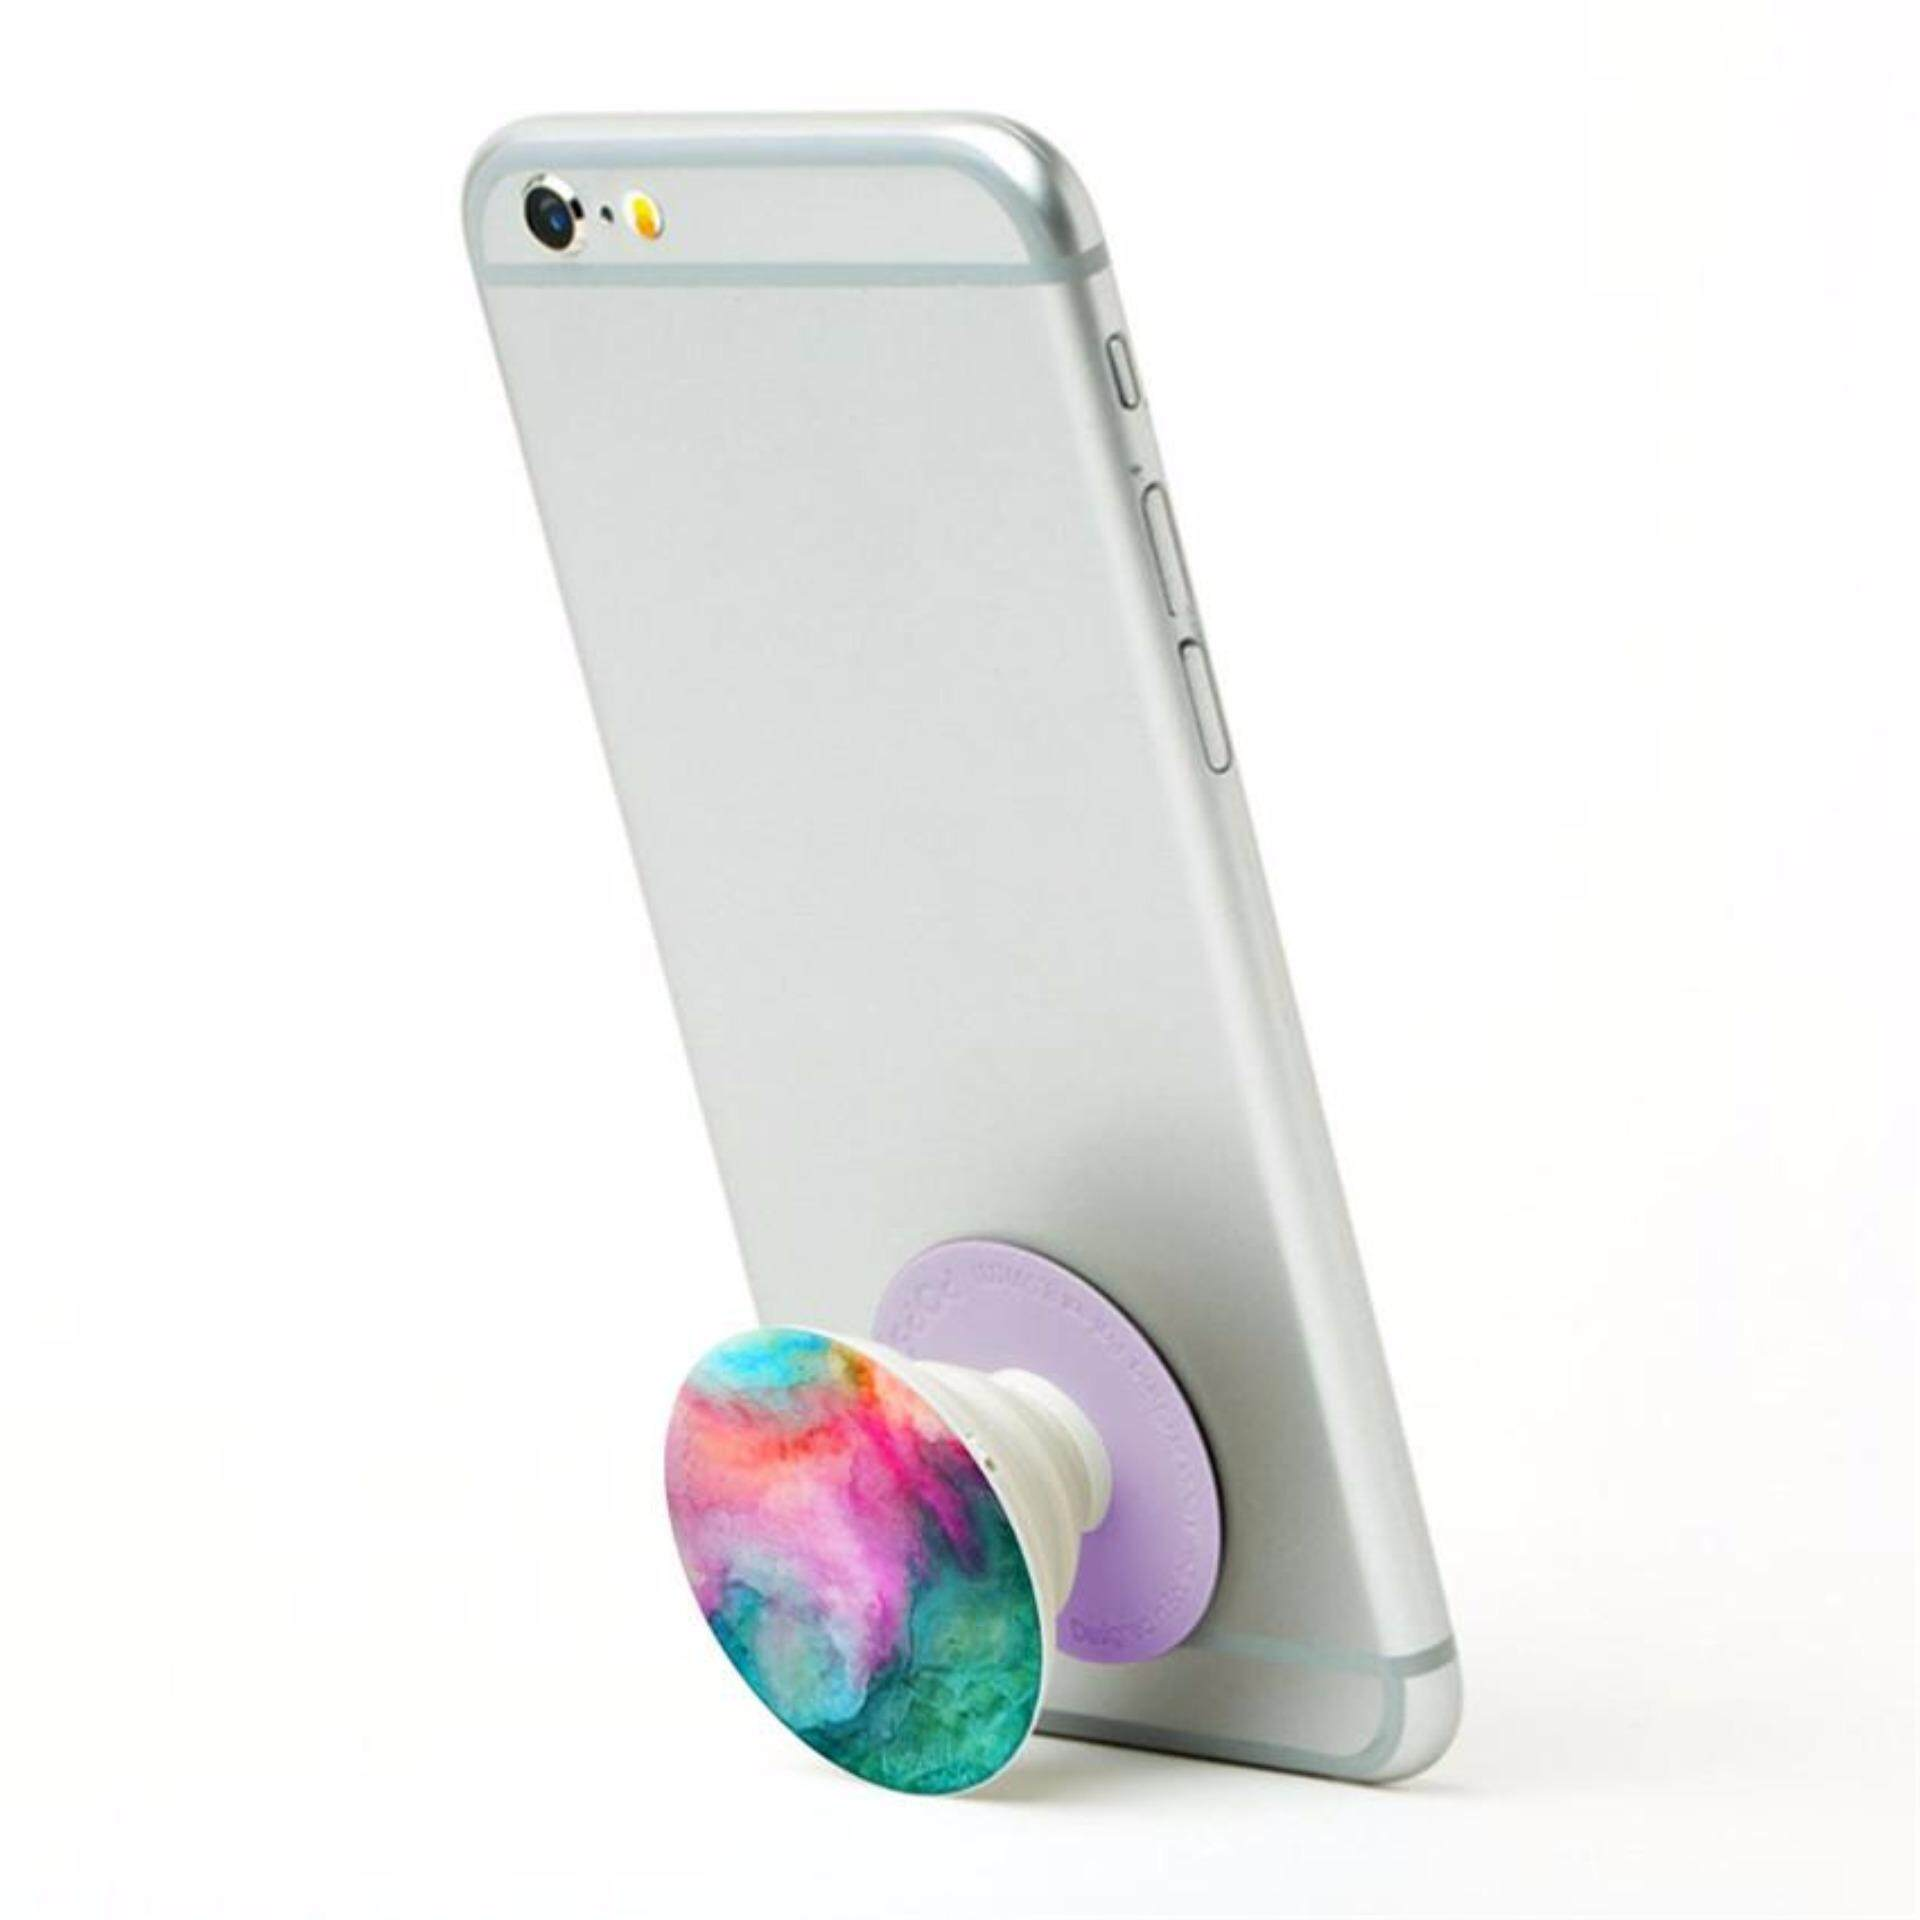 2017 New Phone Expanding stand holder and Grip for Smartphones and Tablets